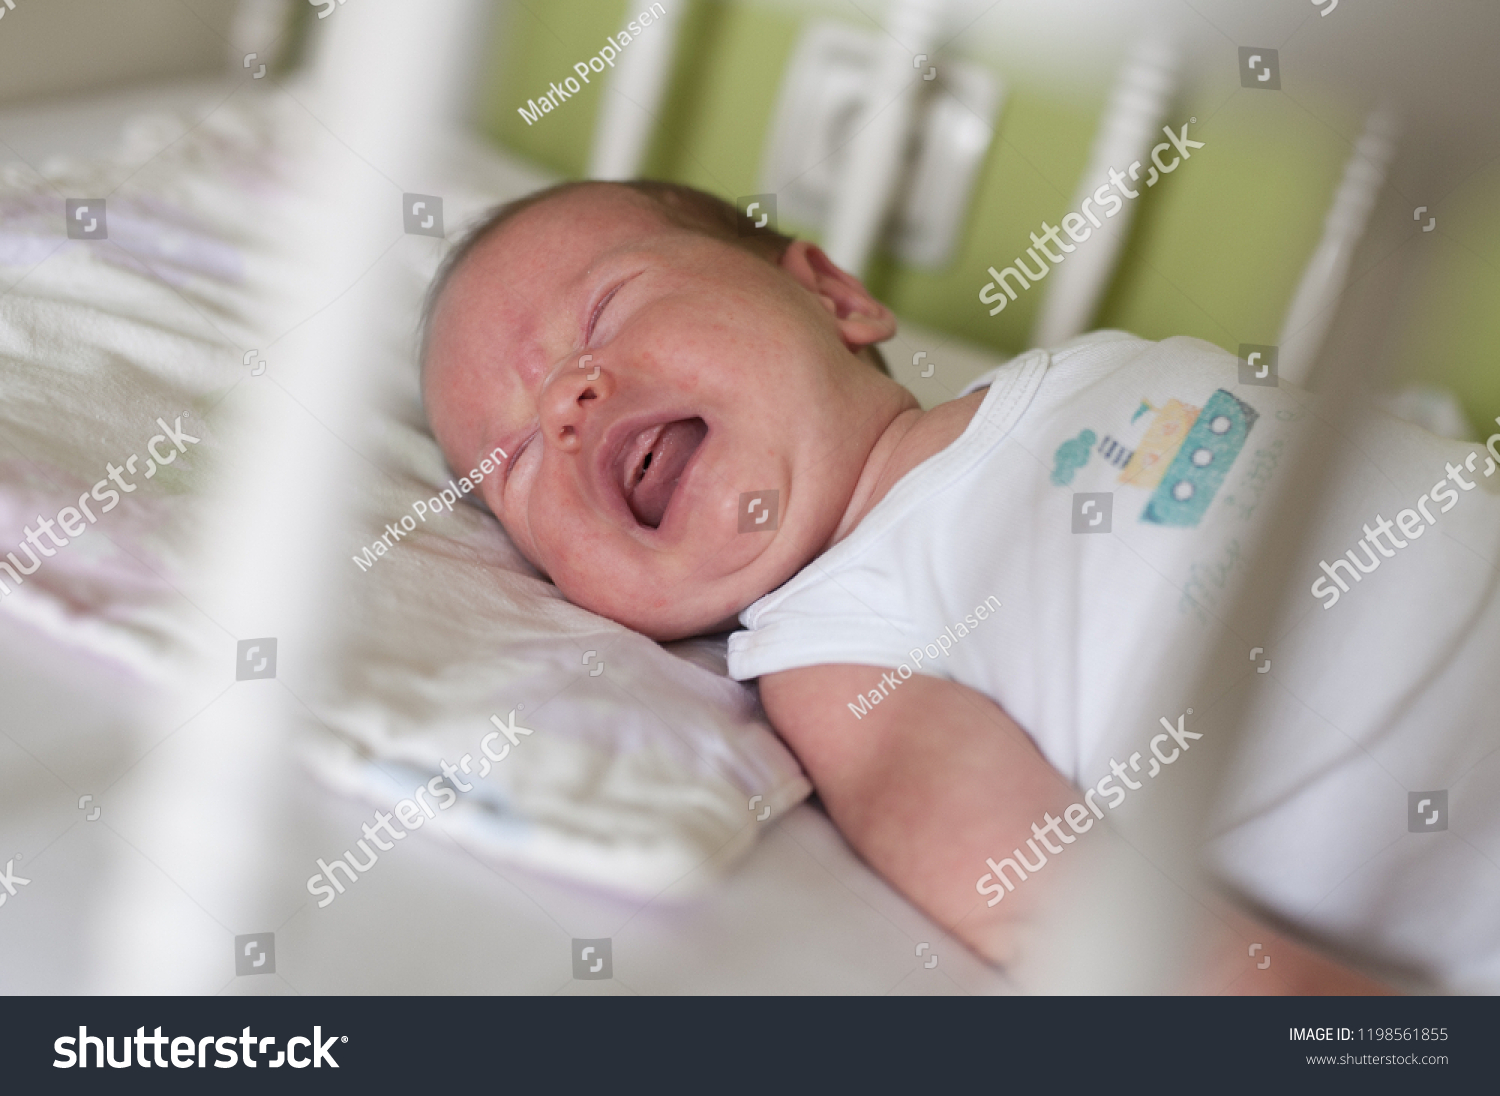 Newborn Baby Girl Crying In Crib Newborn Photography